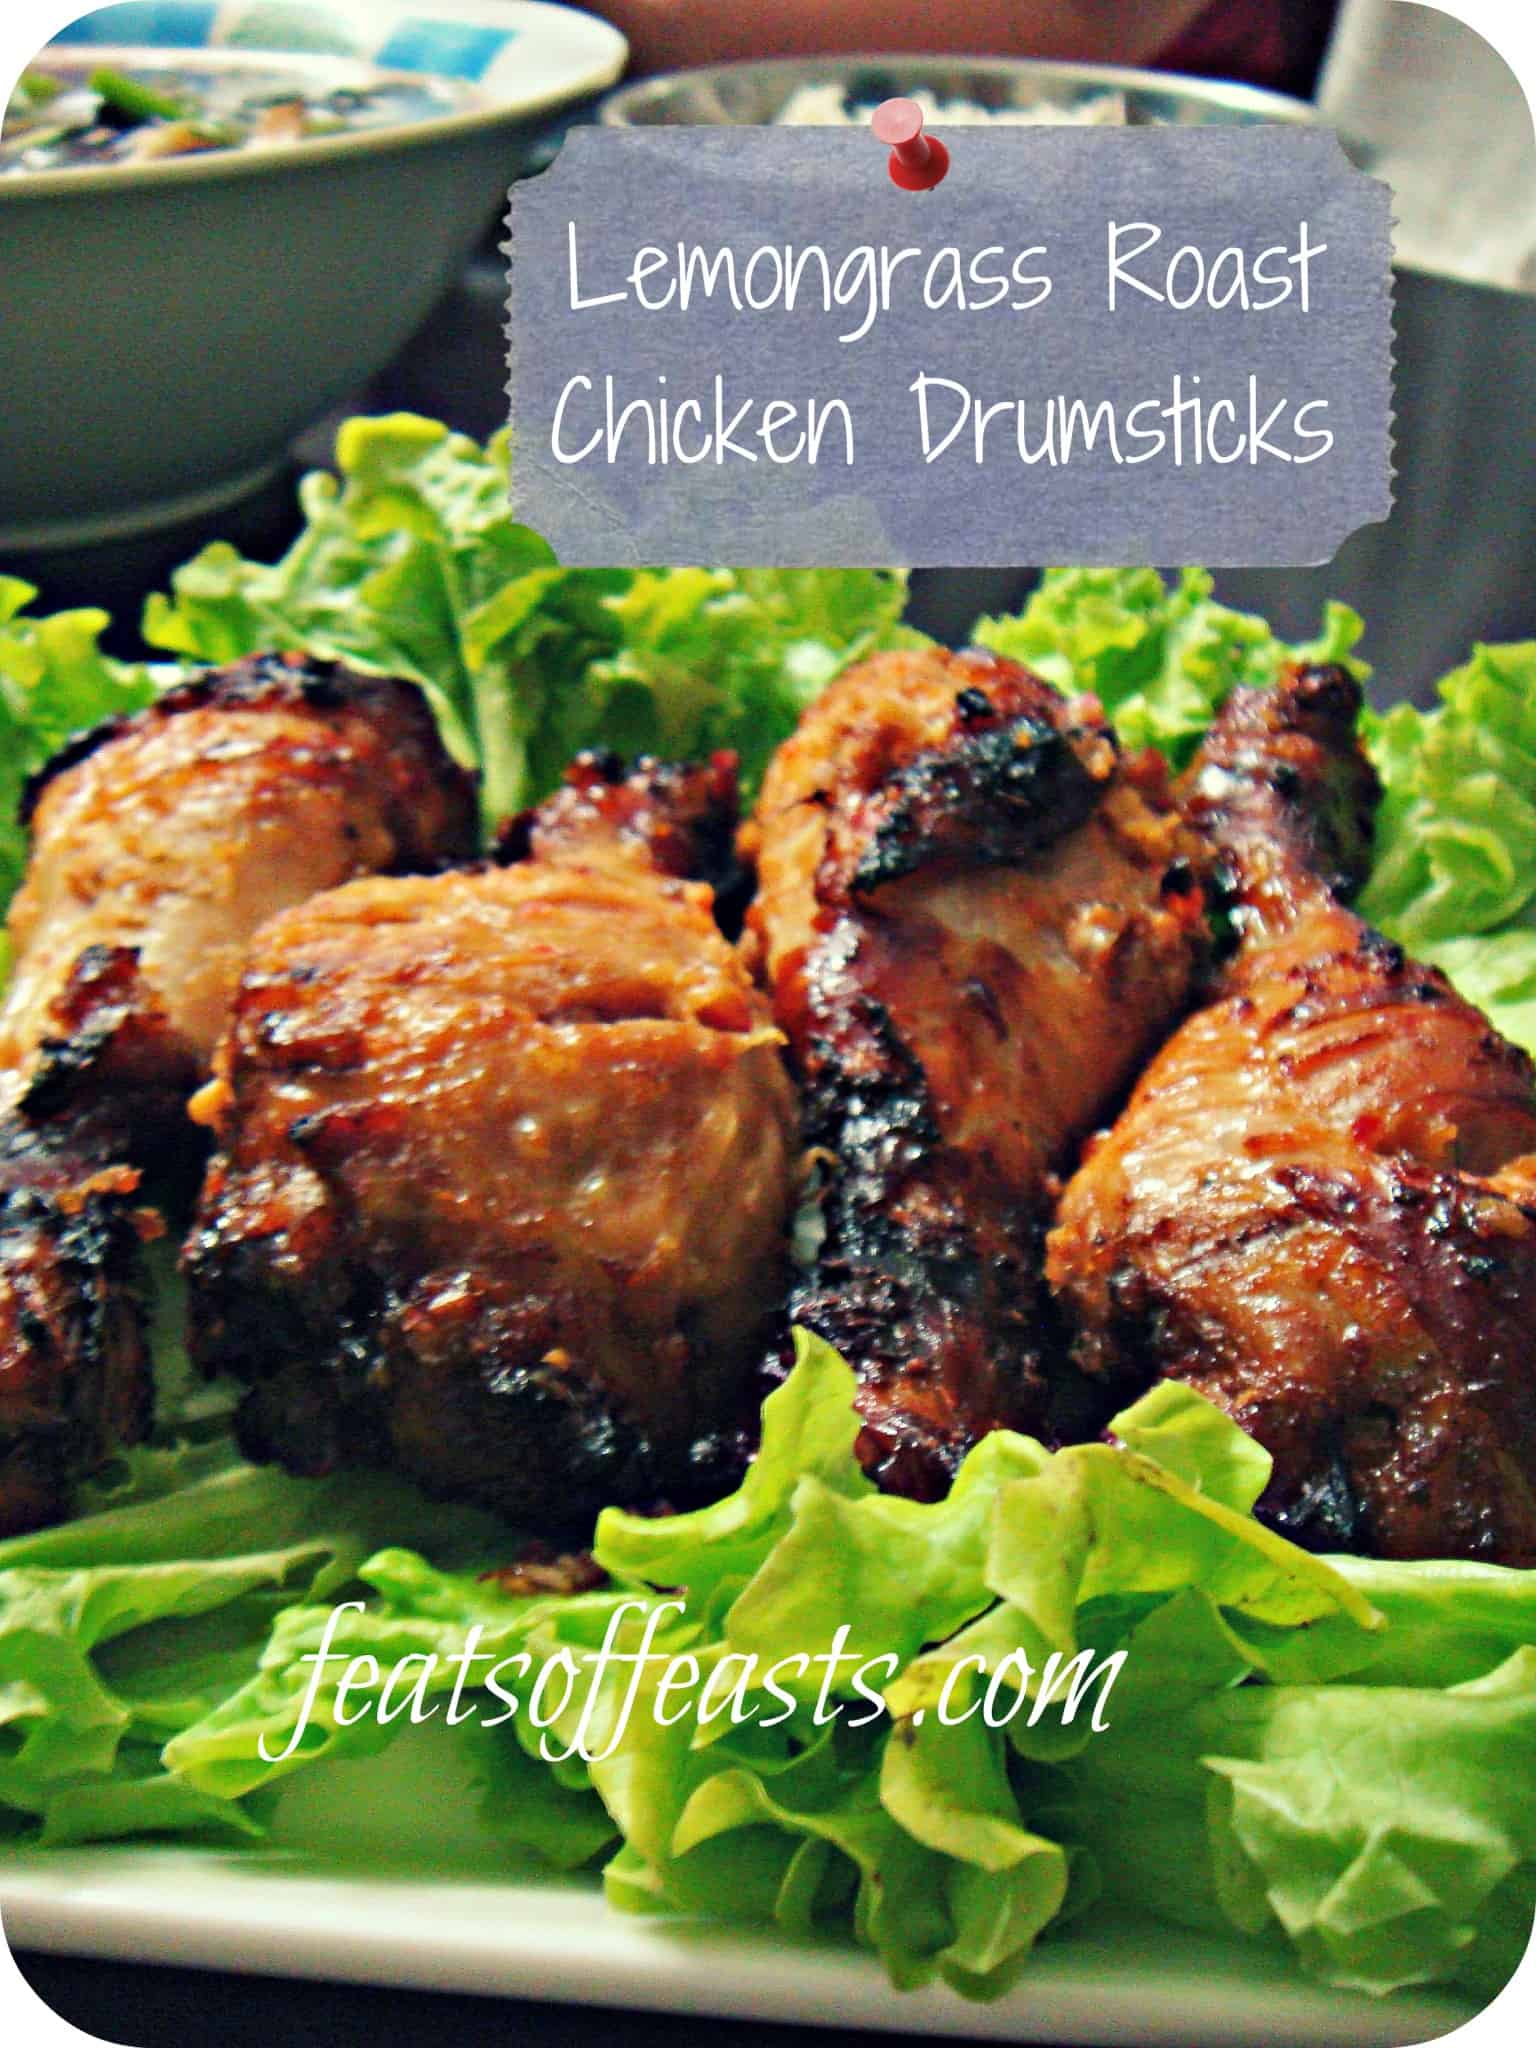 Lemongrass Roast Chicken Drumsticks – Back 2 Back